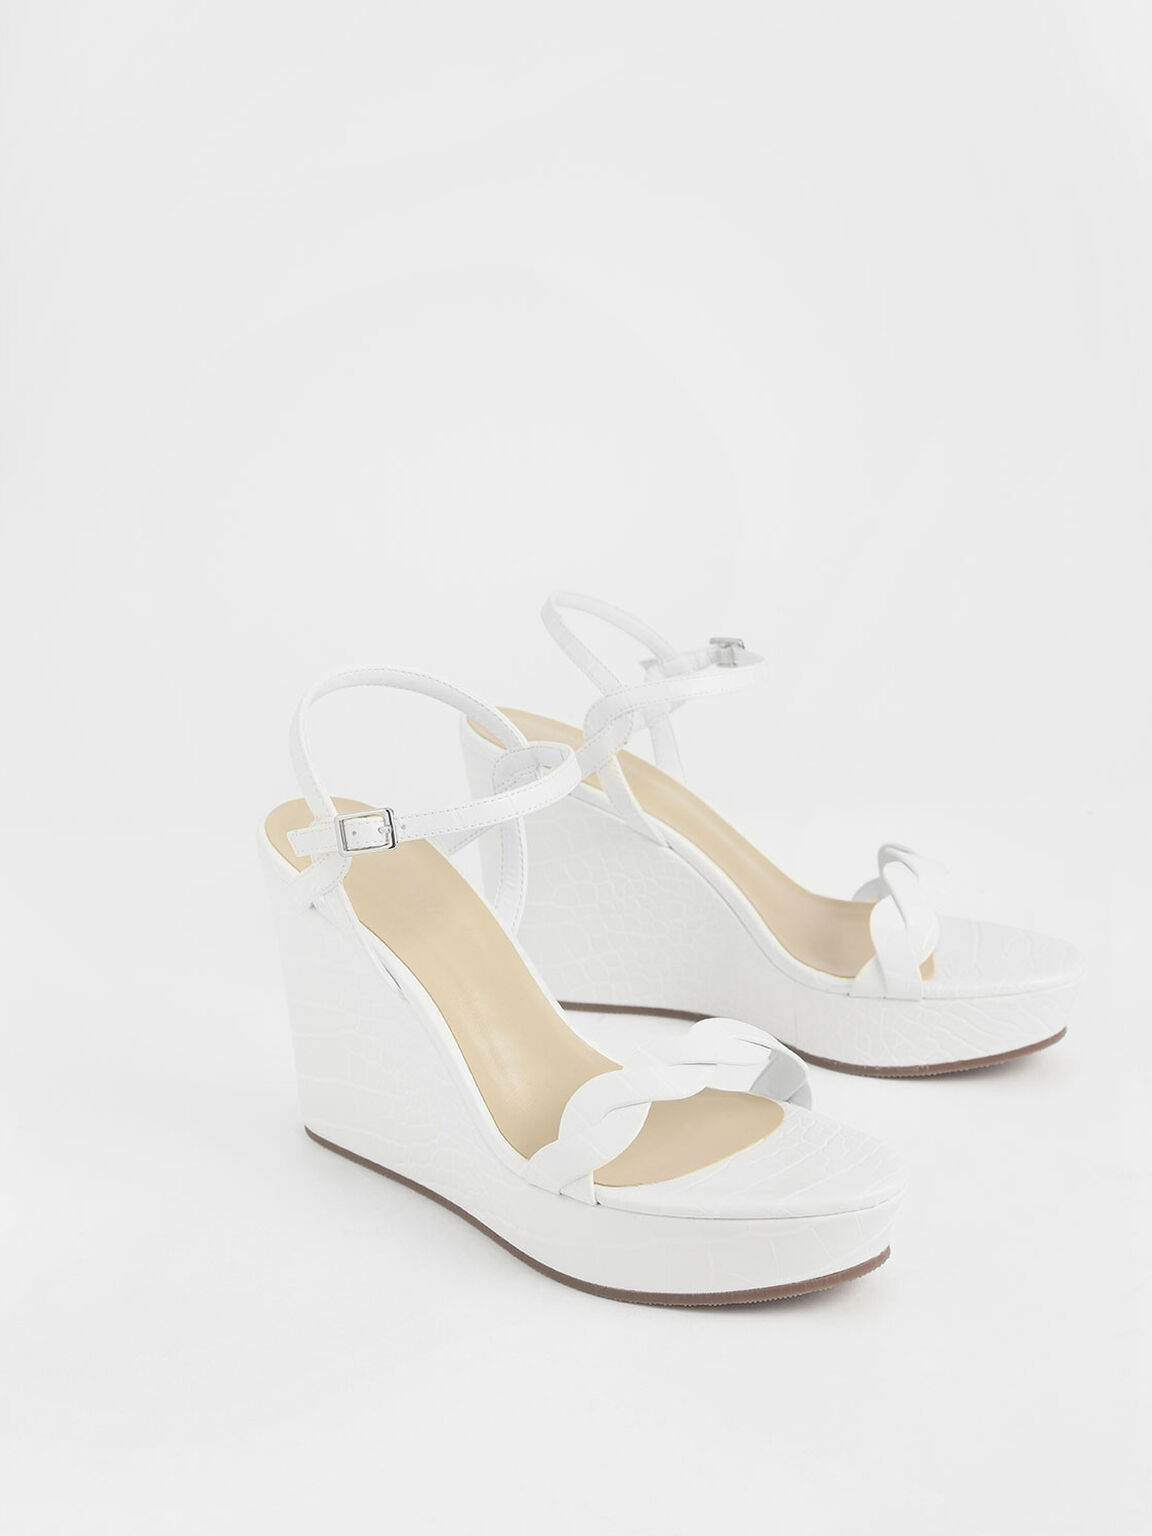 Croc-Effect Twist Strap Platform Wedges, White, hi-res